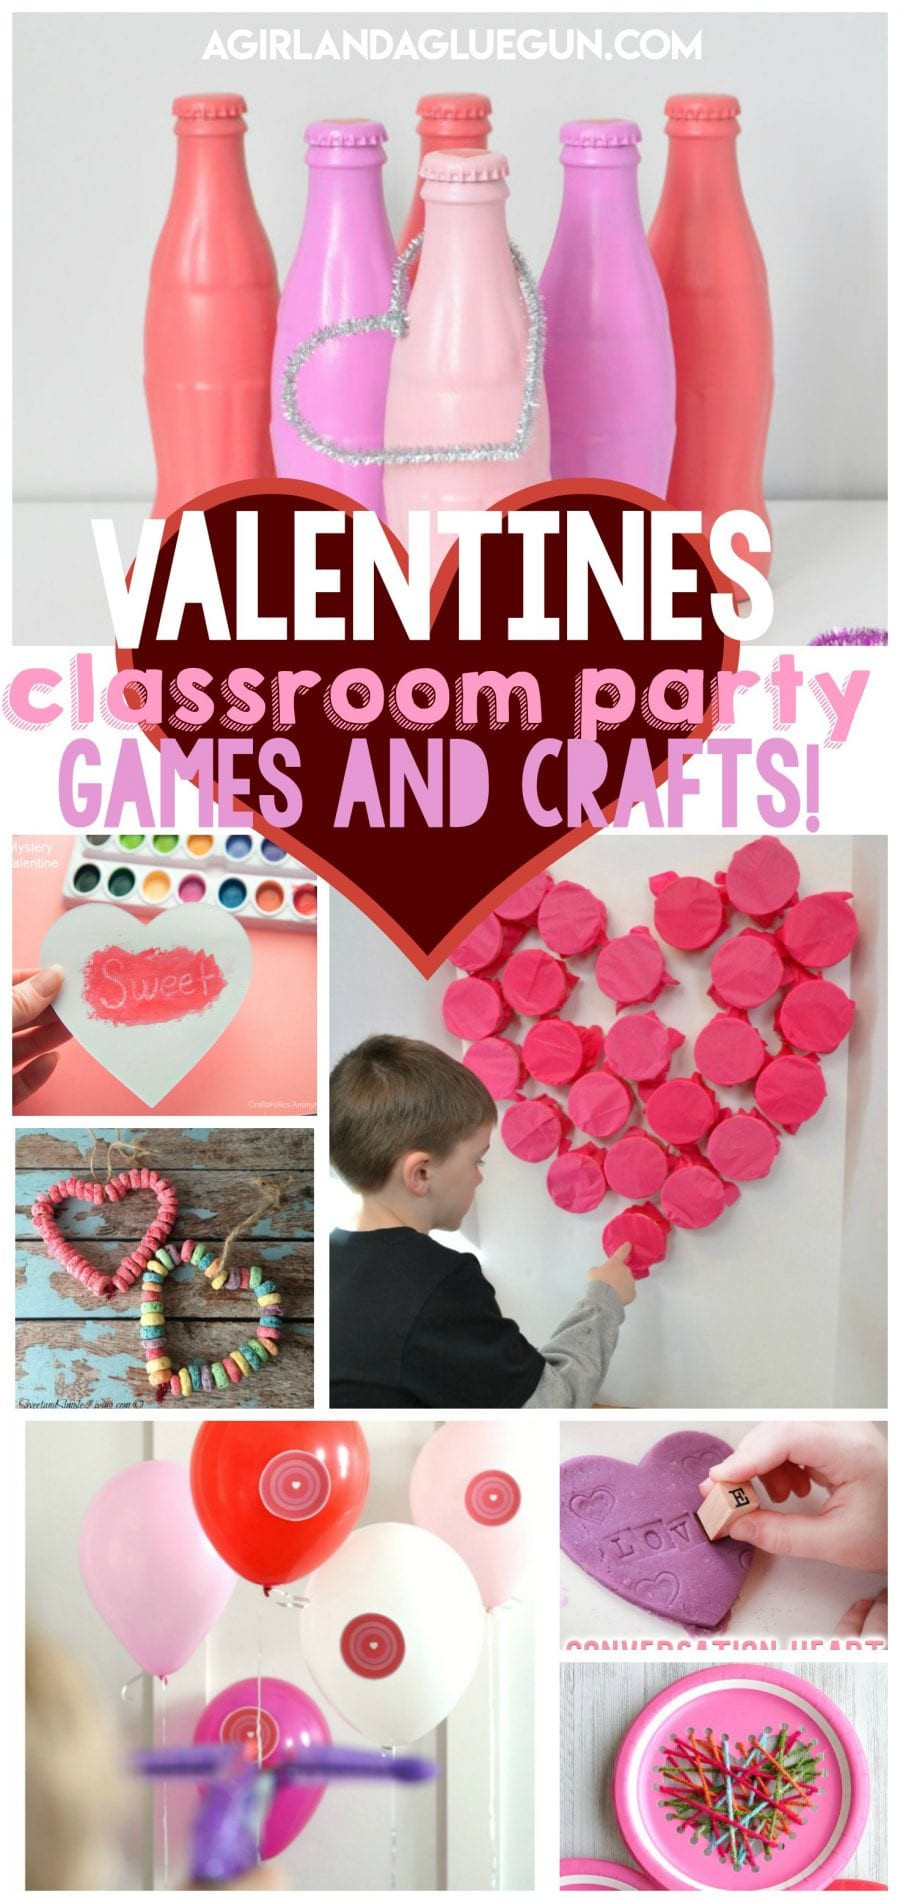 Valentine Party Games For Kids  Valentines games and crafts for Classroom parties A girl